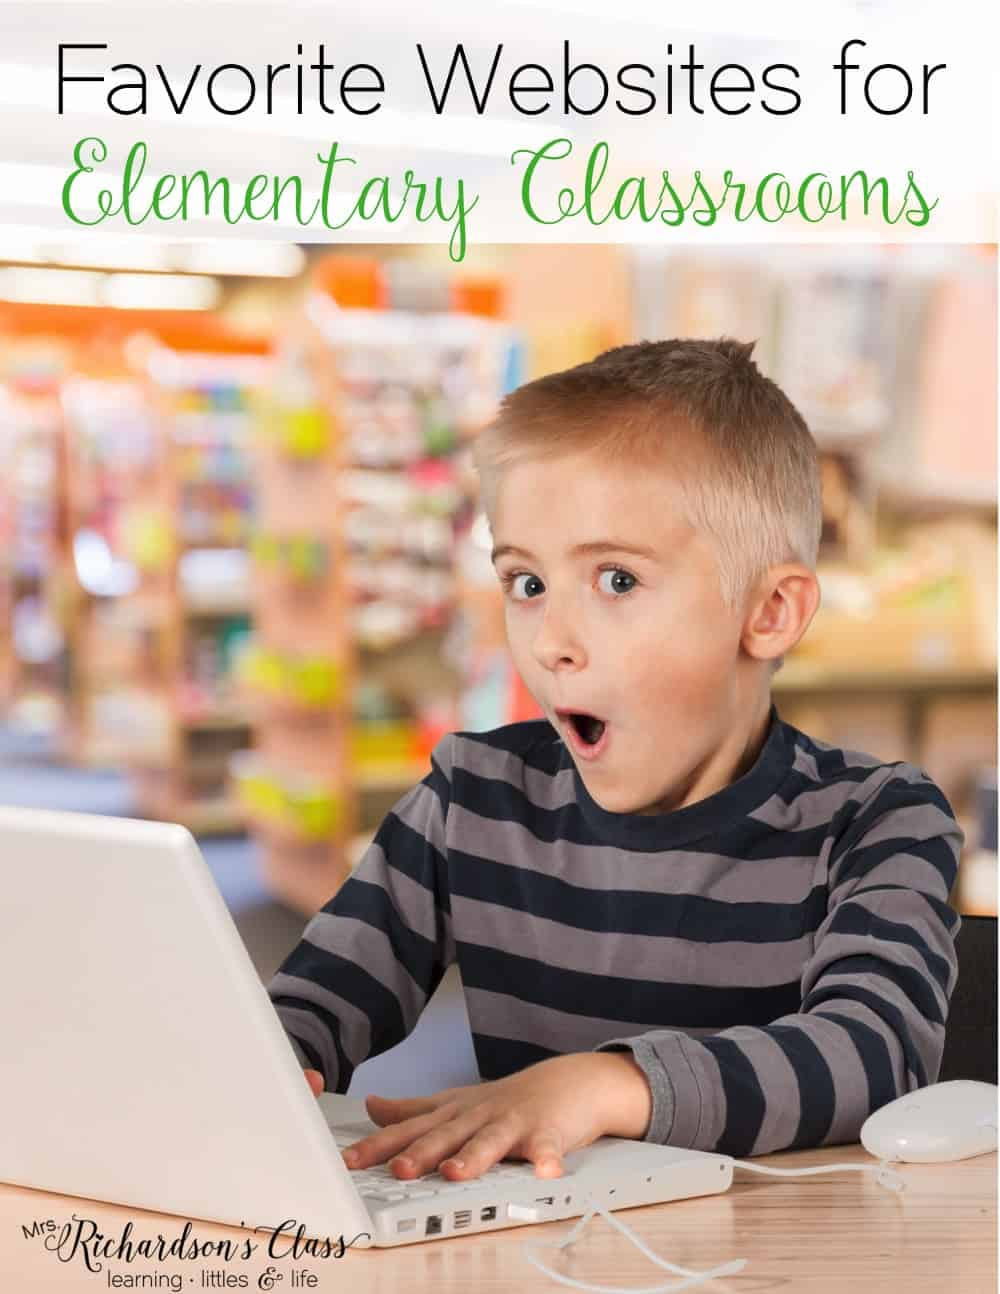 Favorite websites for kids to use in the classroom that are perfect elementary students. We love the 2nd one so much! #ClassroomIdeas #TeacherTips